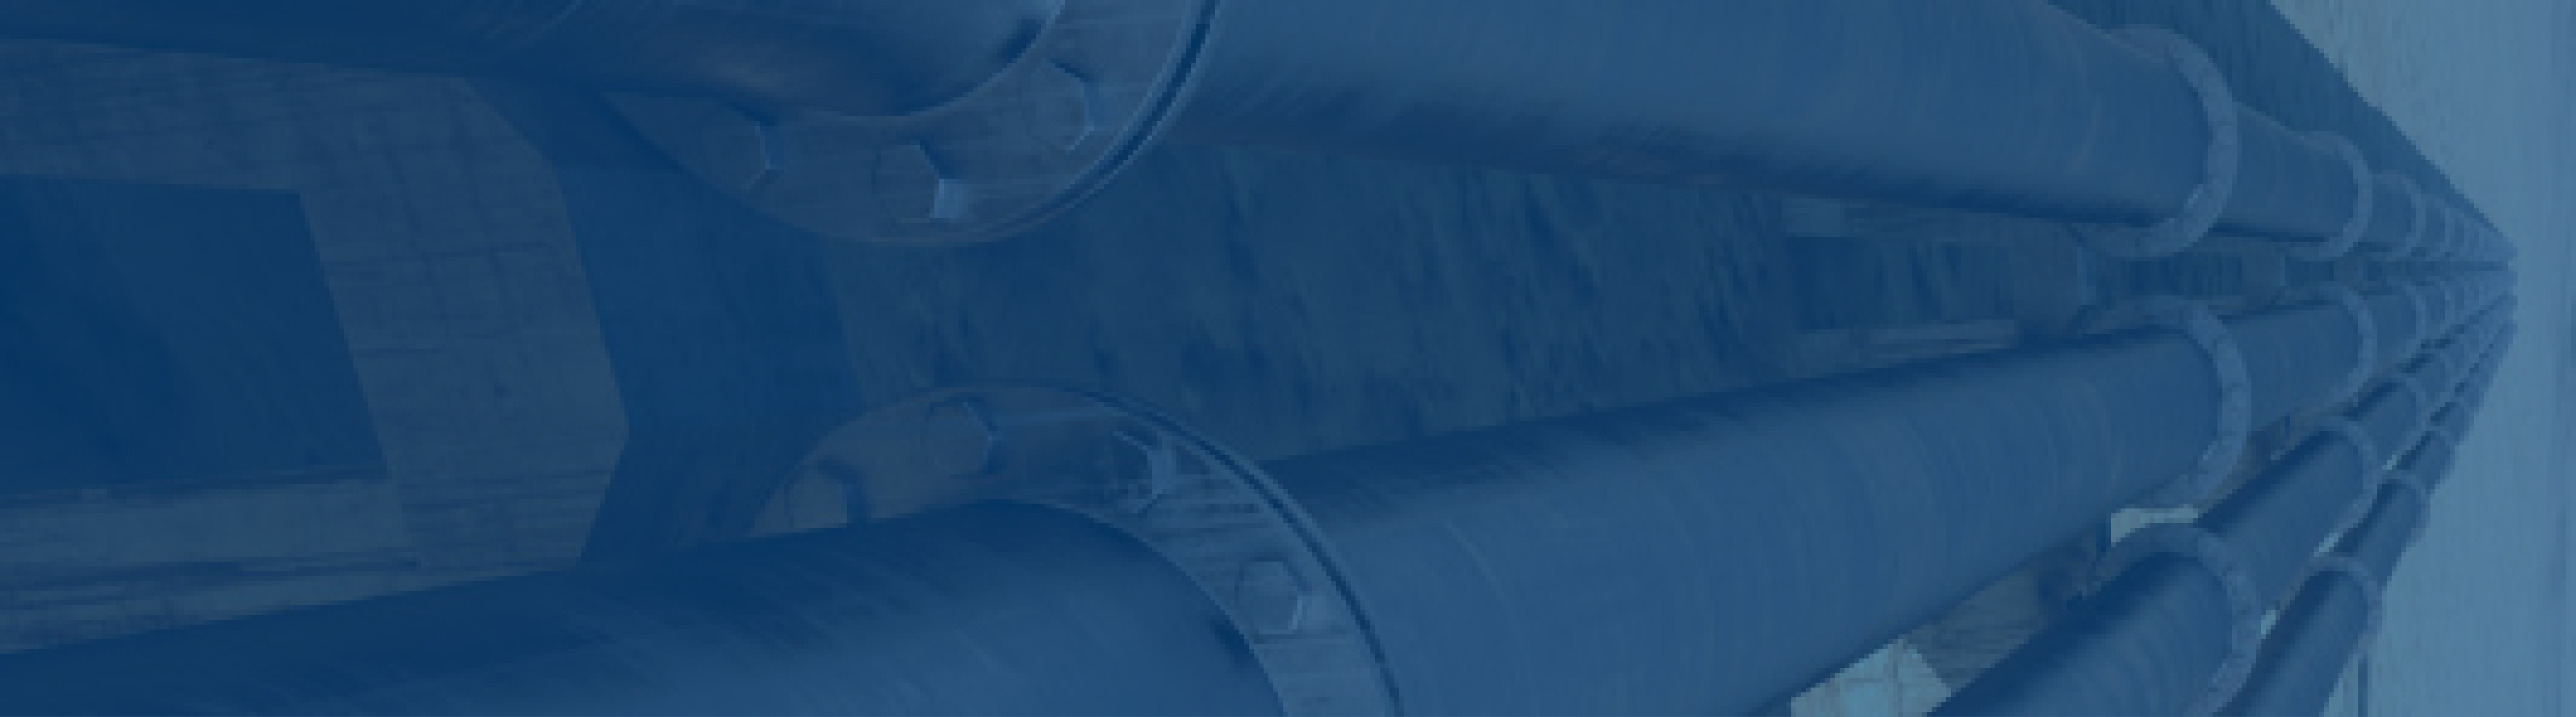 Find pipe leaks with pipeline leak detection